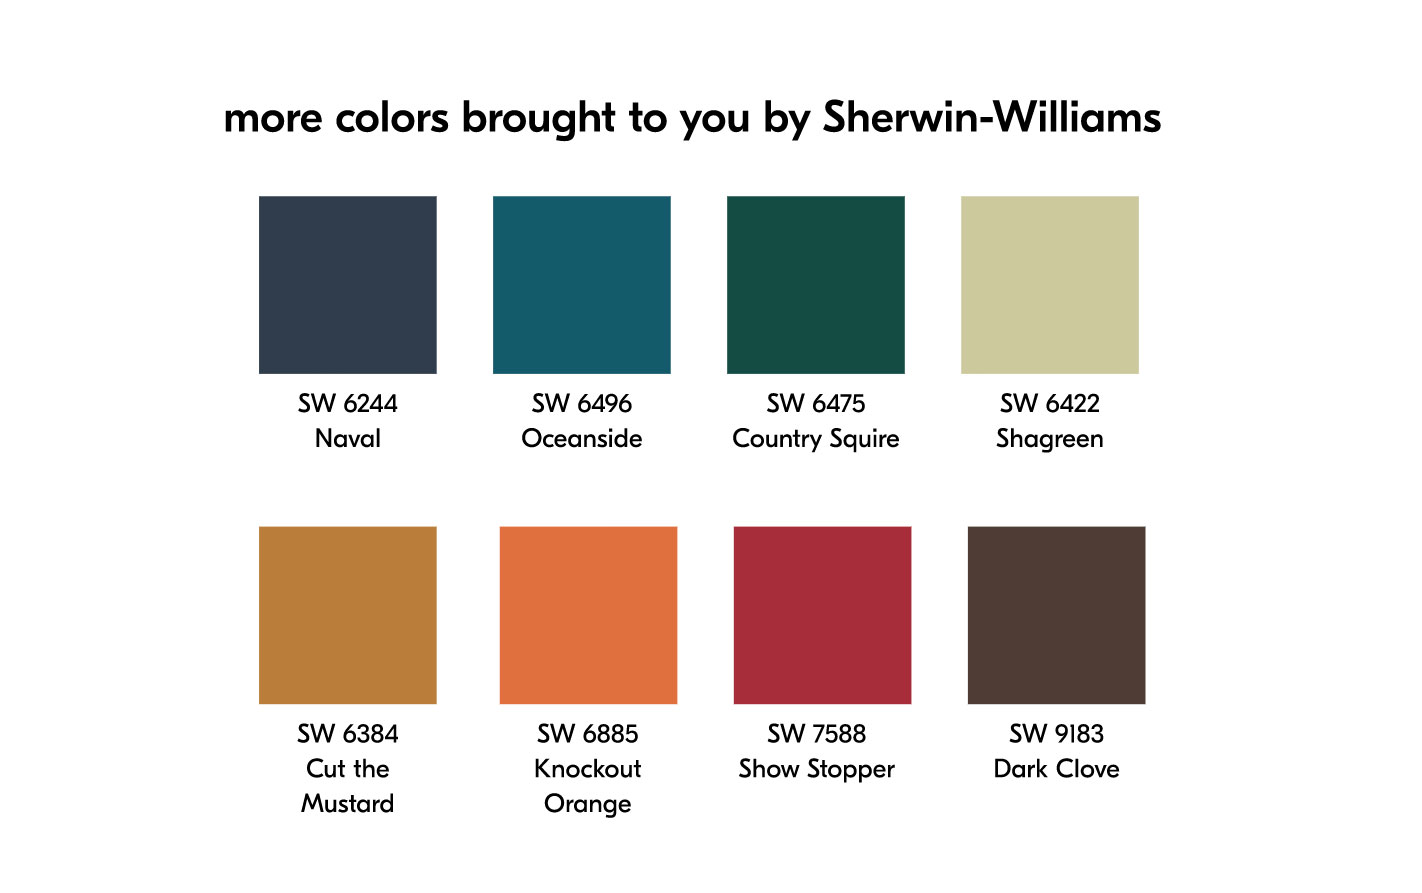 more spring colors brought to you by Sherwin-Williams